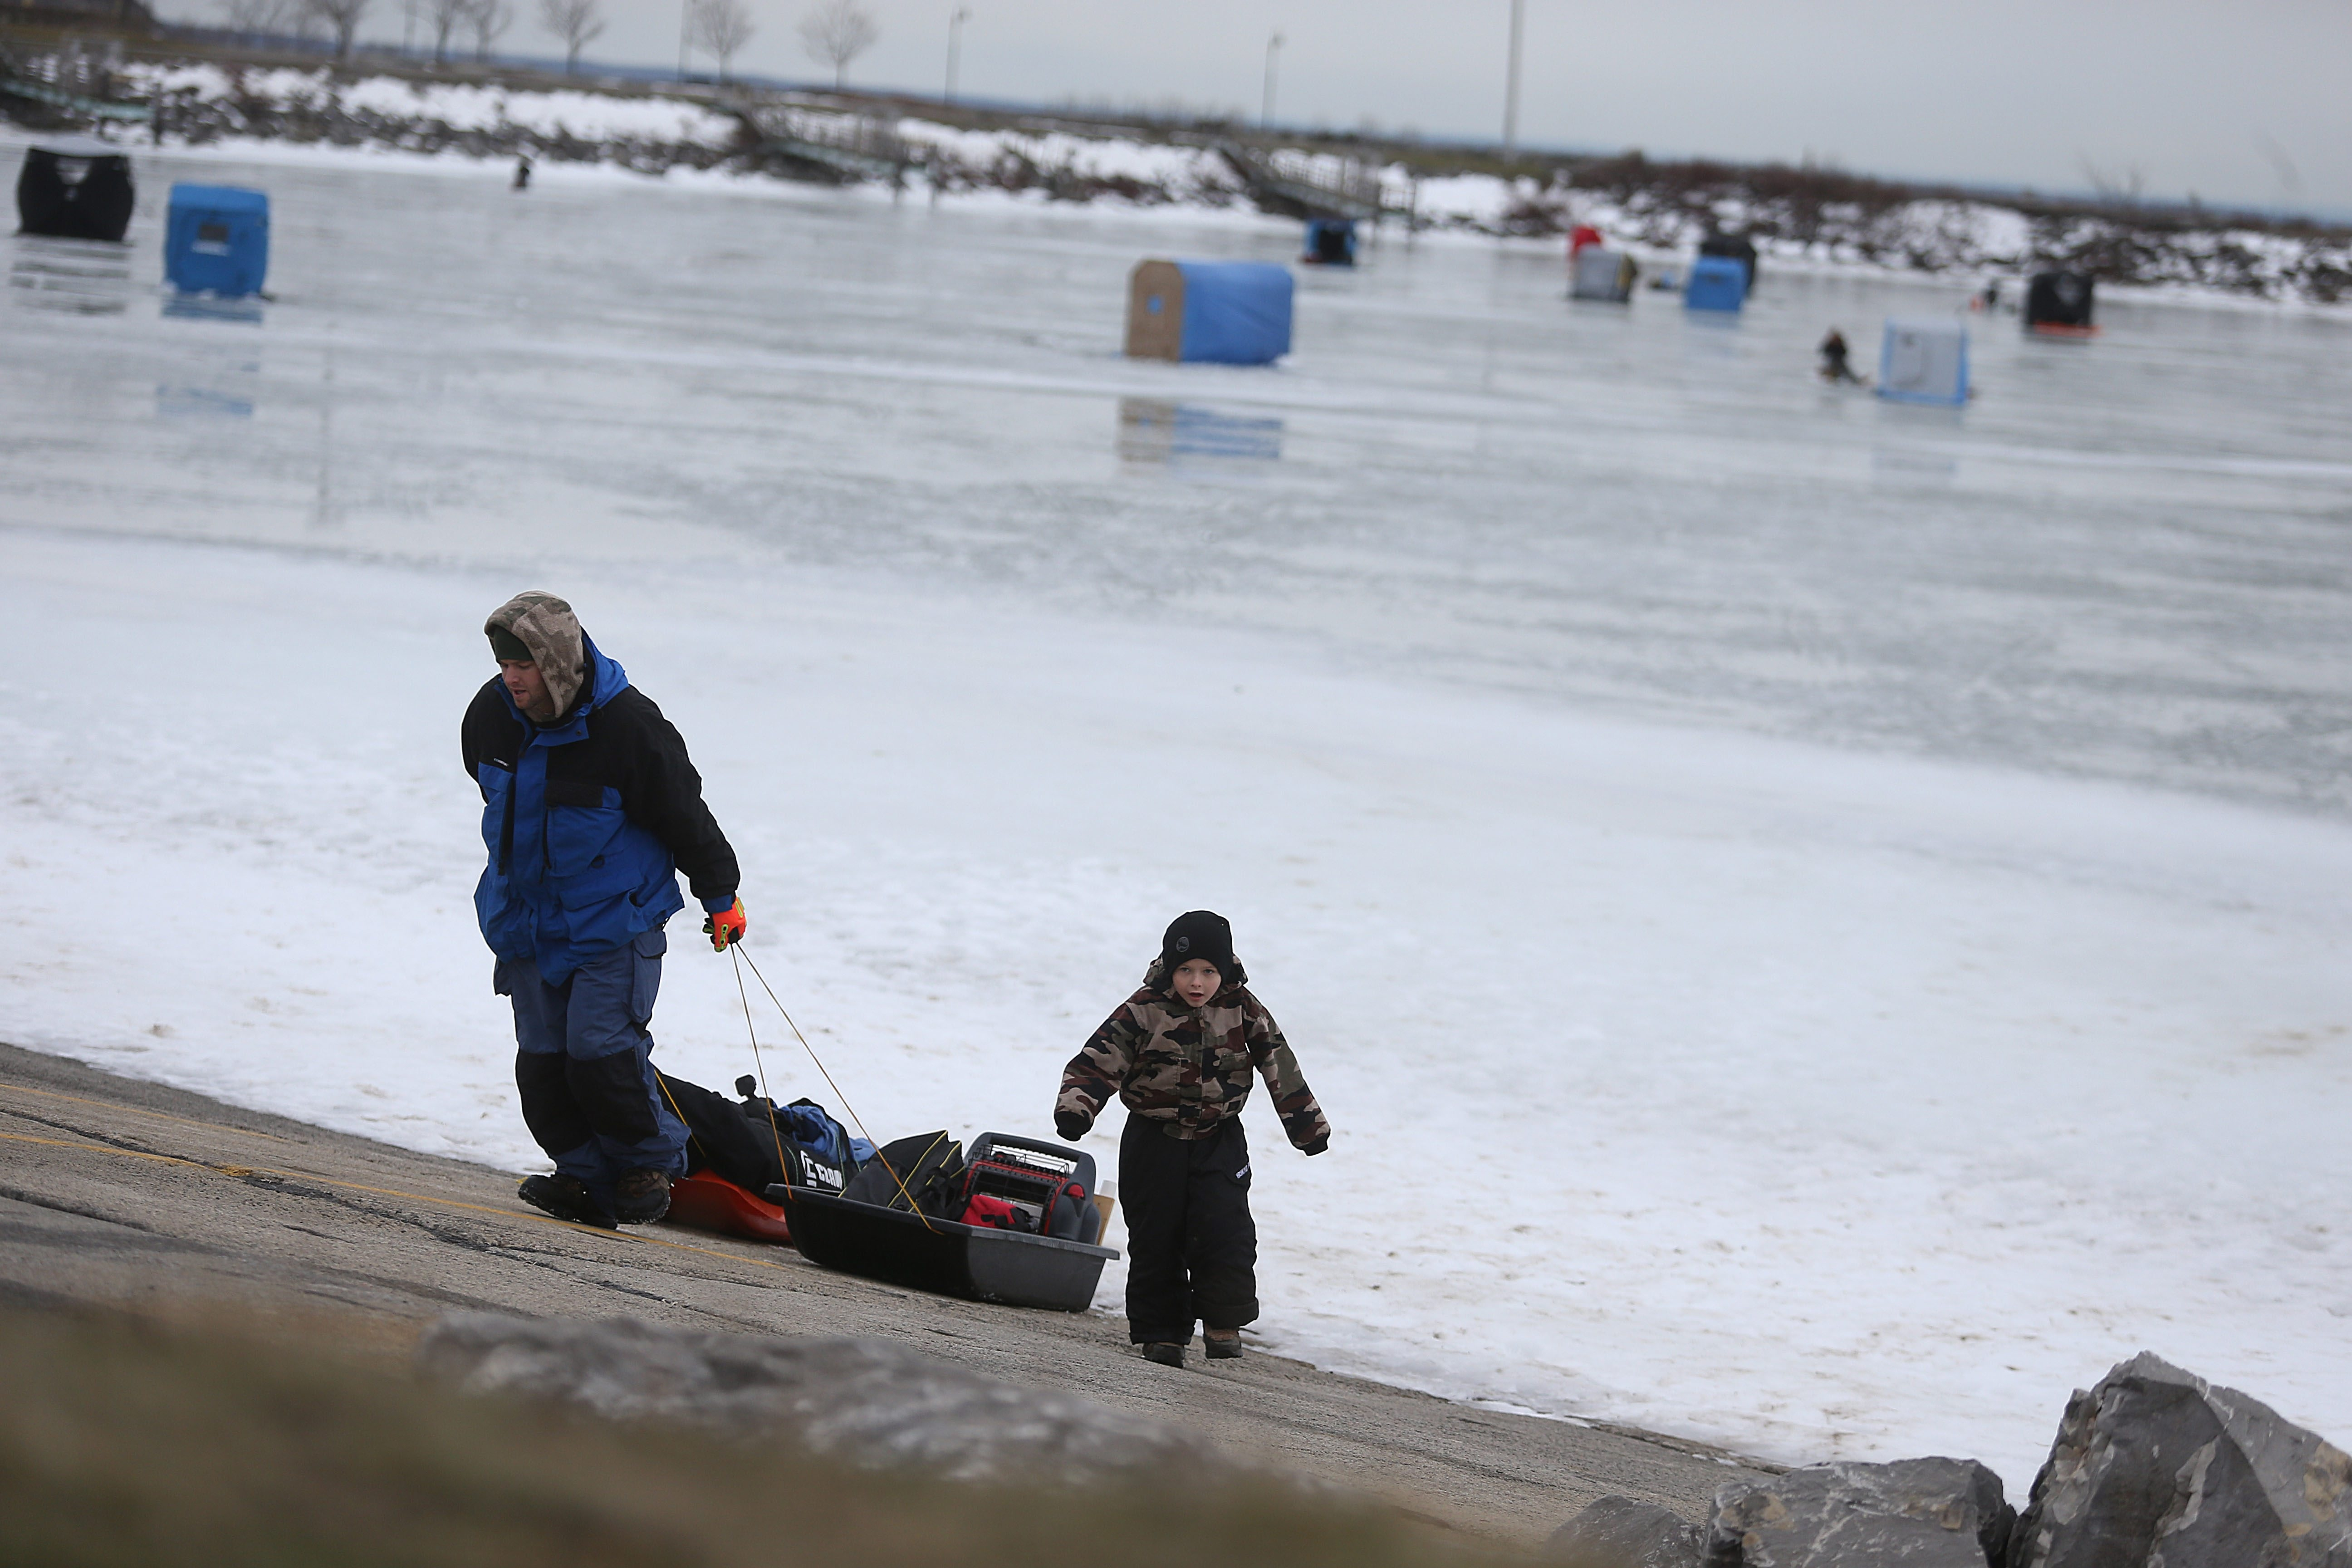 Frigid temperatures for the next few days will make ice fishermen happy. Rick Becker Sr. and his son, Rick Jr., 5, pull a sled with their ice fishing equipment off the ice near the Small Boat Harbor in Buffalo Sunday.